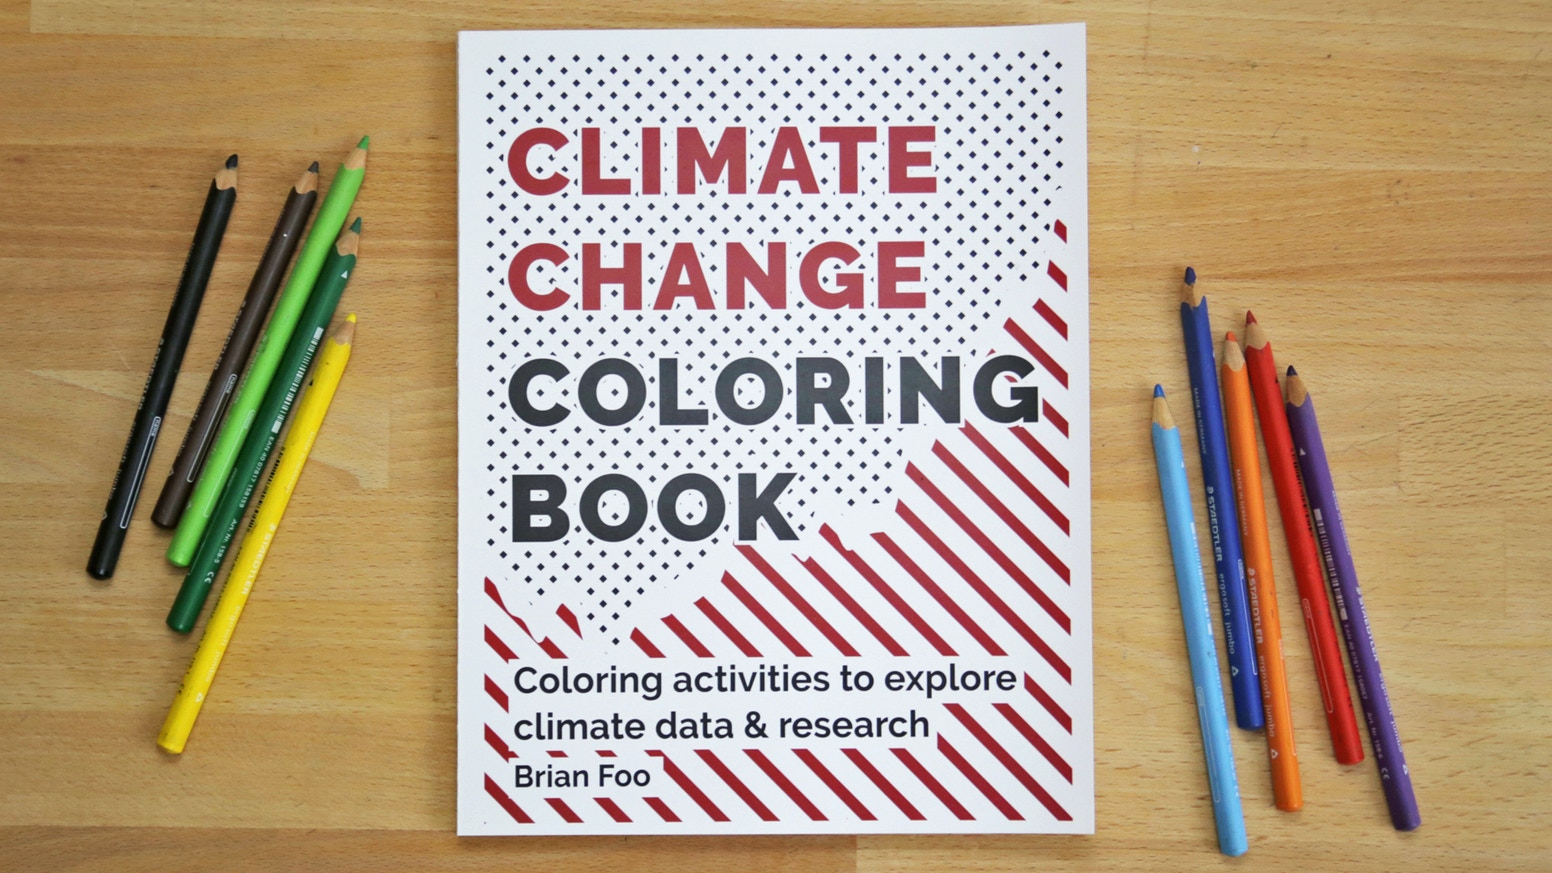 This Book Contains Guided Coloring Activities That Explore Scientific Research And Data Related To Climate Change